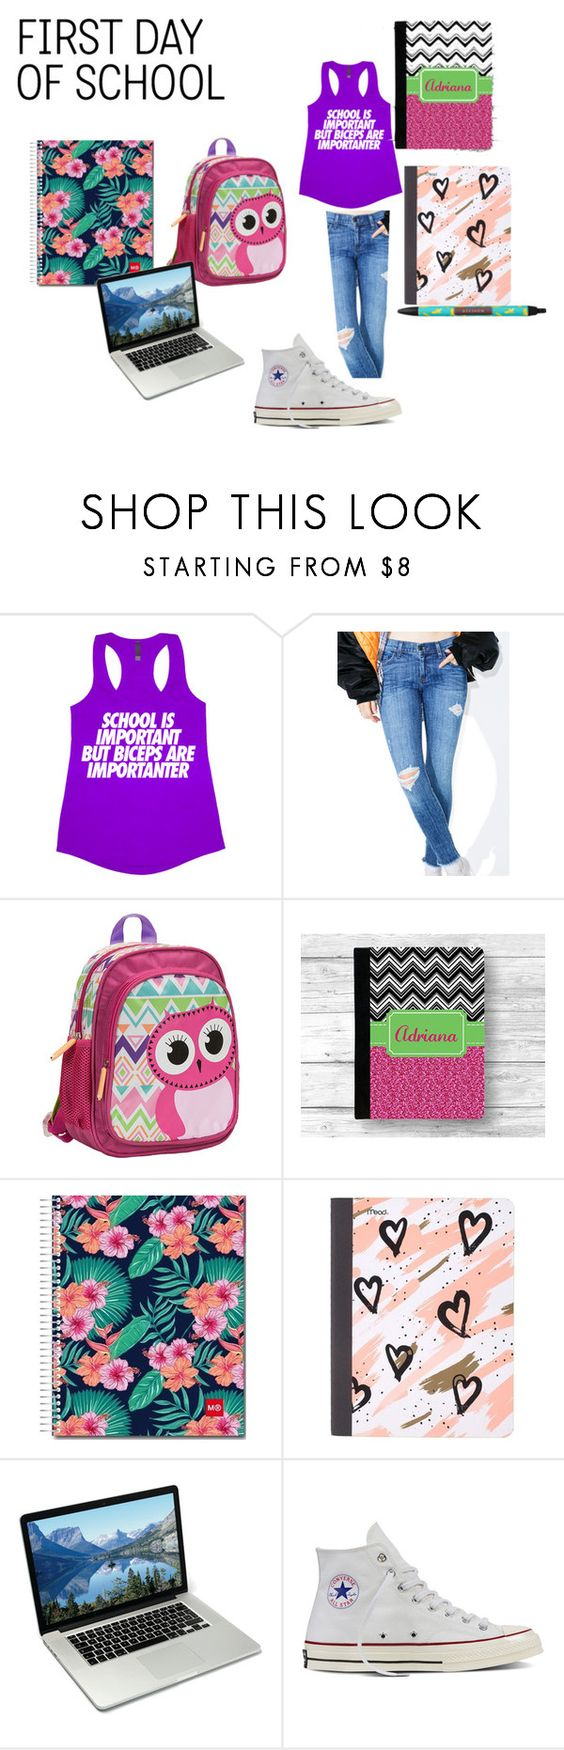 """First  day of  school 11"" by bunnysupergirl ❤ liked on Polyvore featuring Pistola, Rockland Luggage, Mead and Converse"